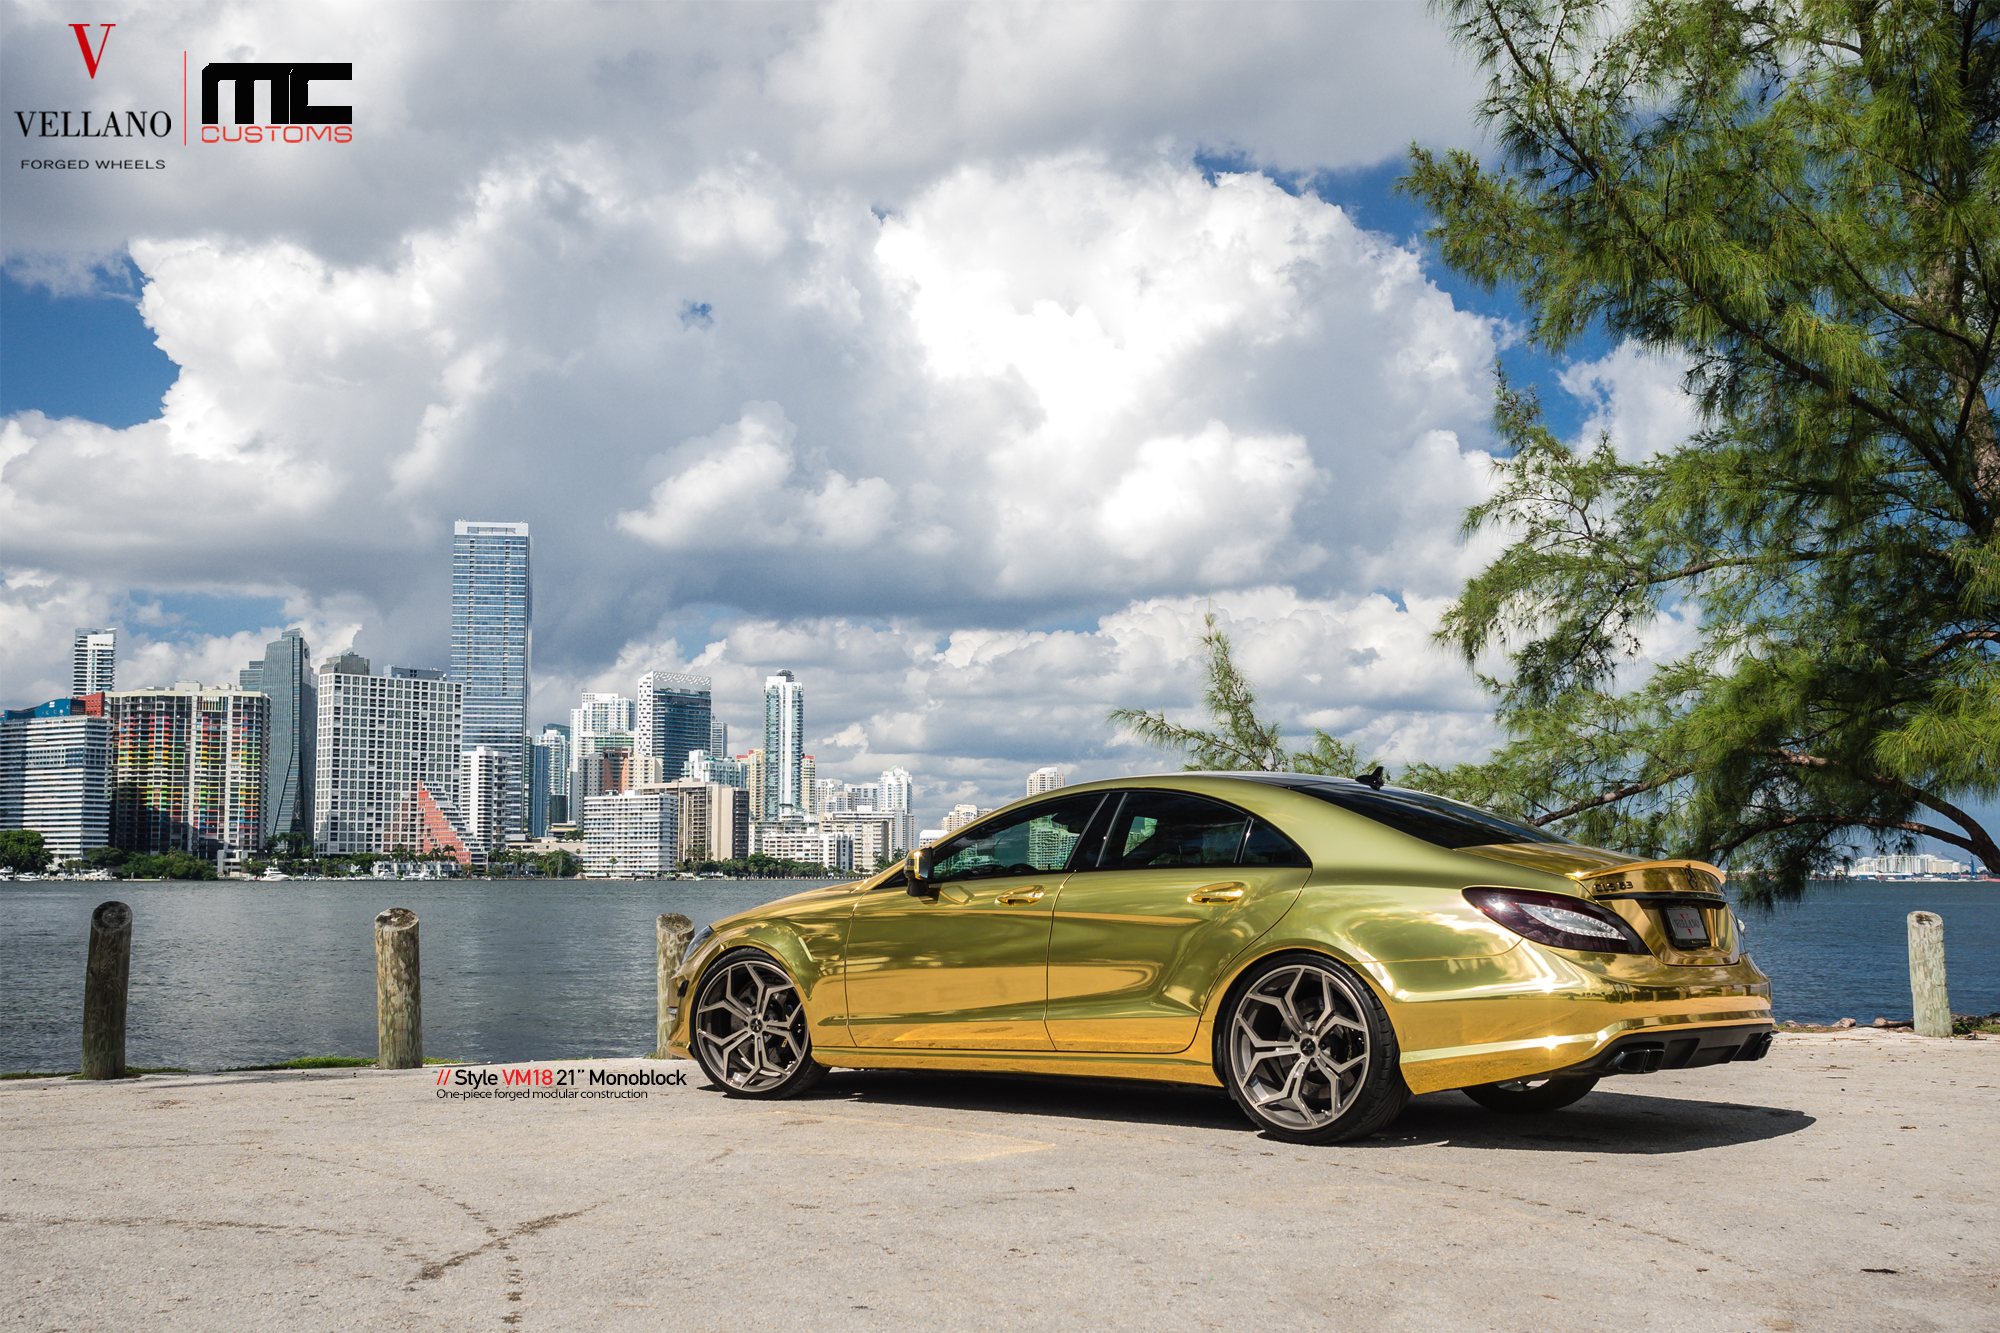 Mercedes Amg Gt Gold >> Mercedes CLS 63 AMG Makes Gold Wrap and Vellano Wheels Cool - autoevolution